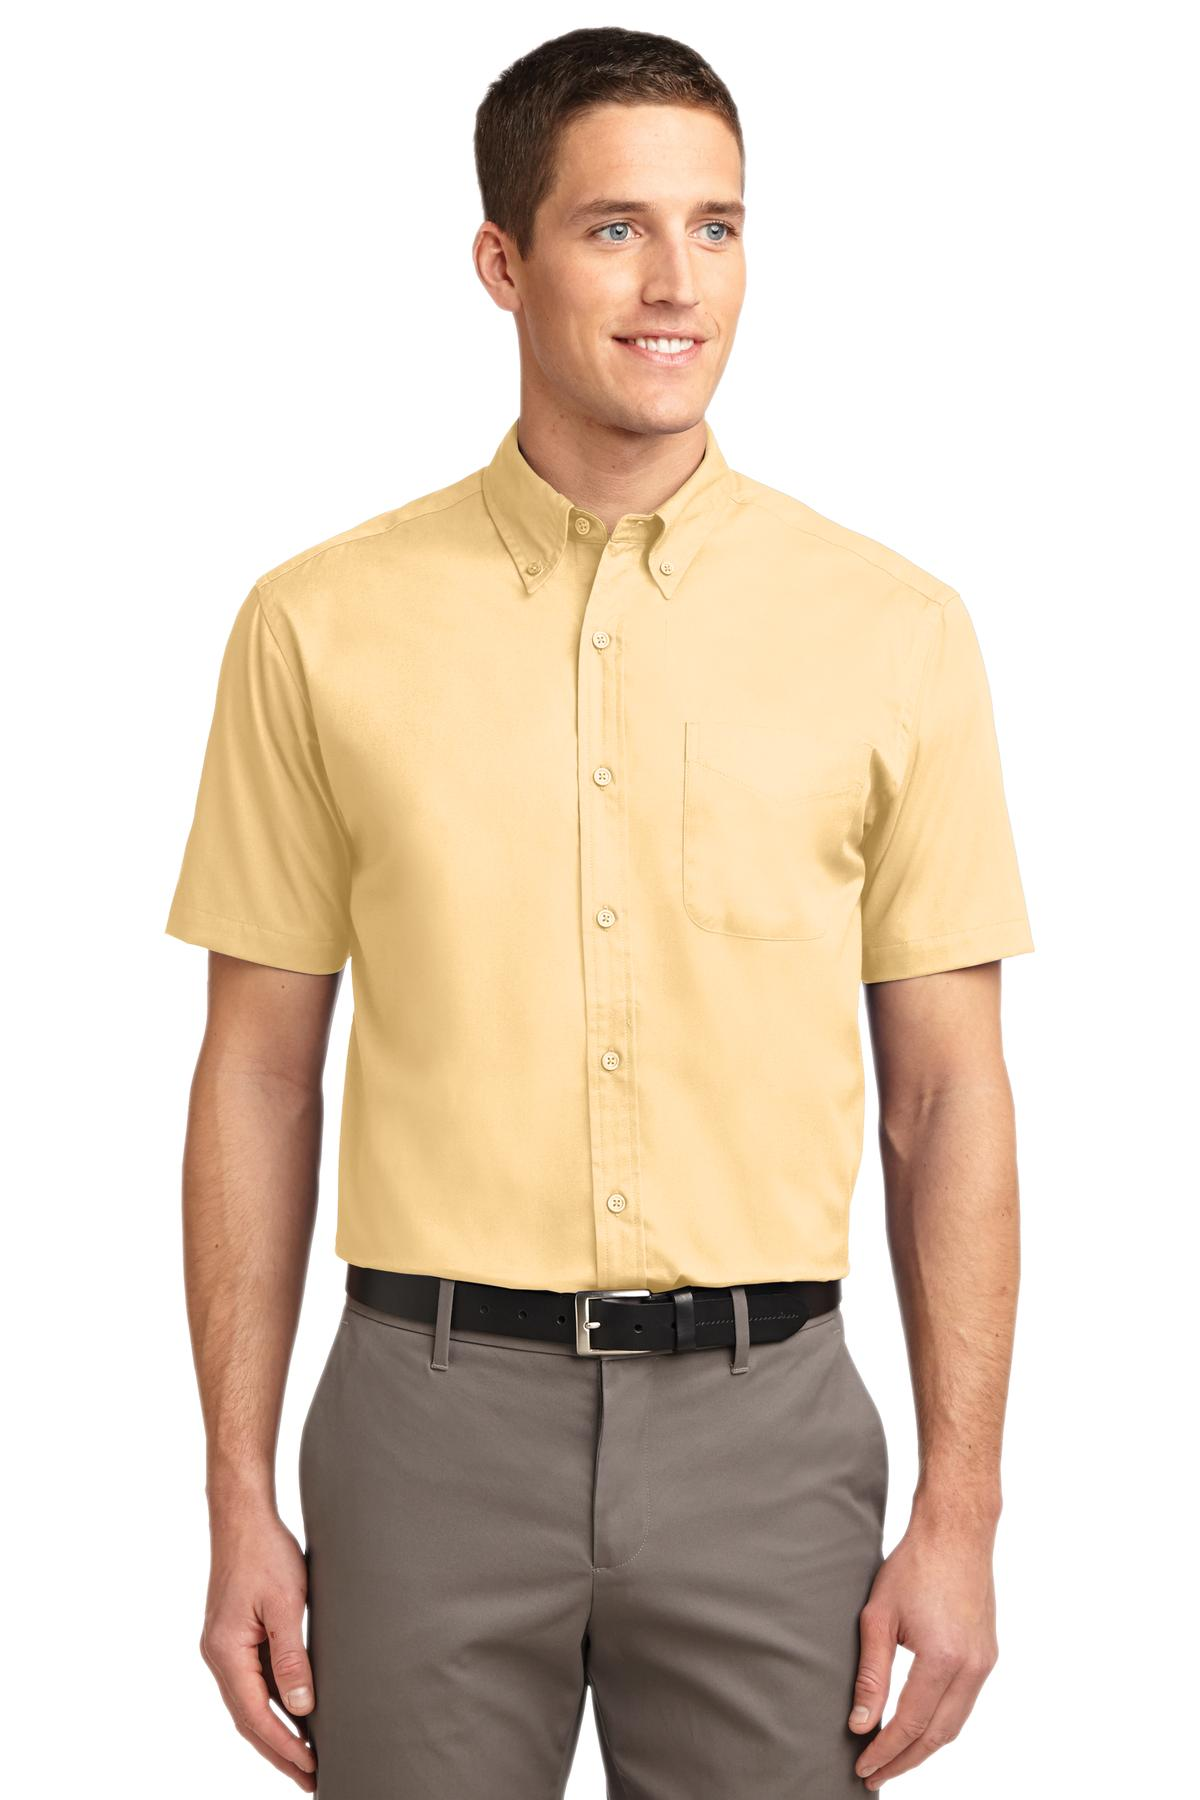 Port Authority ®  Short Sleeve Easy Care Shirt.  S508 - Yellow